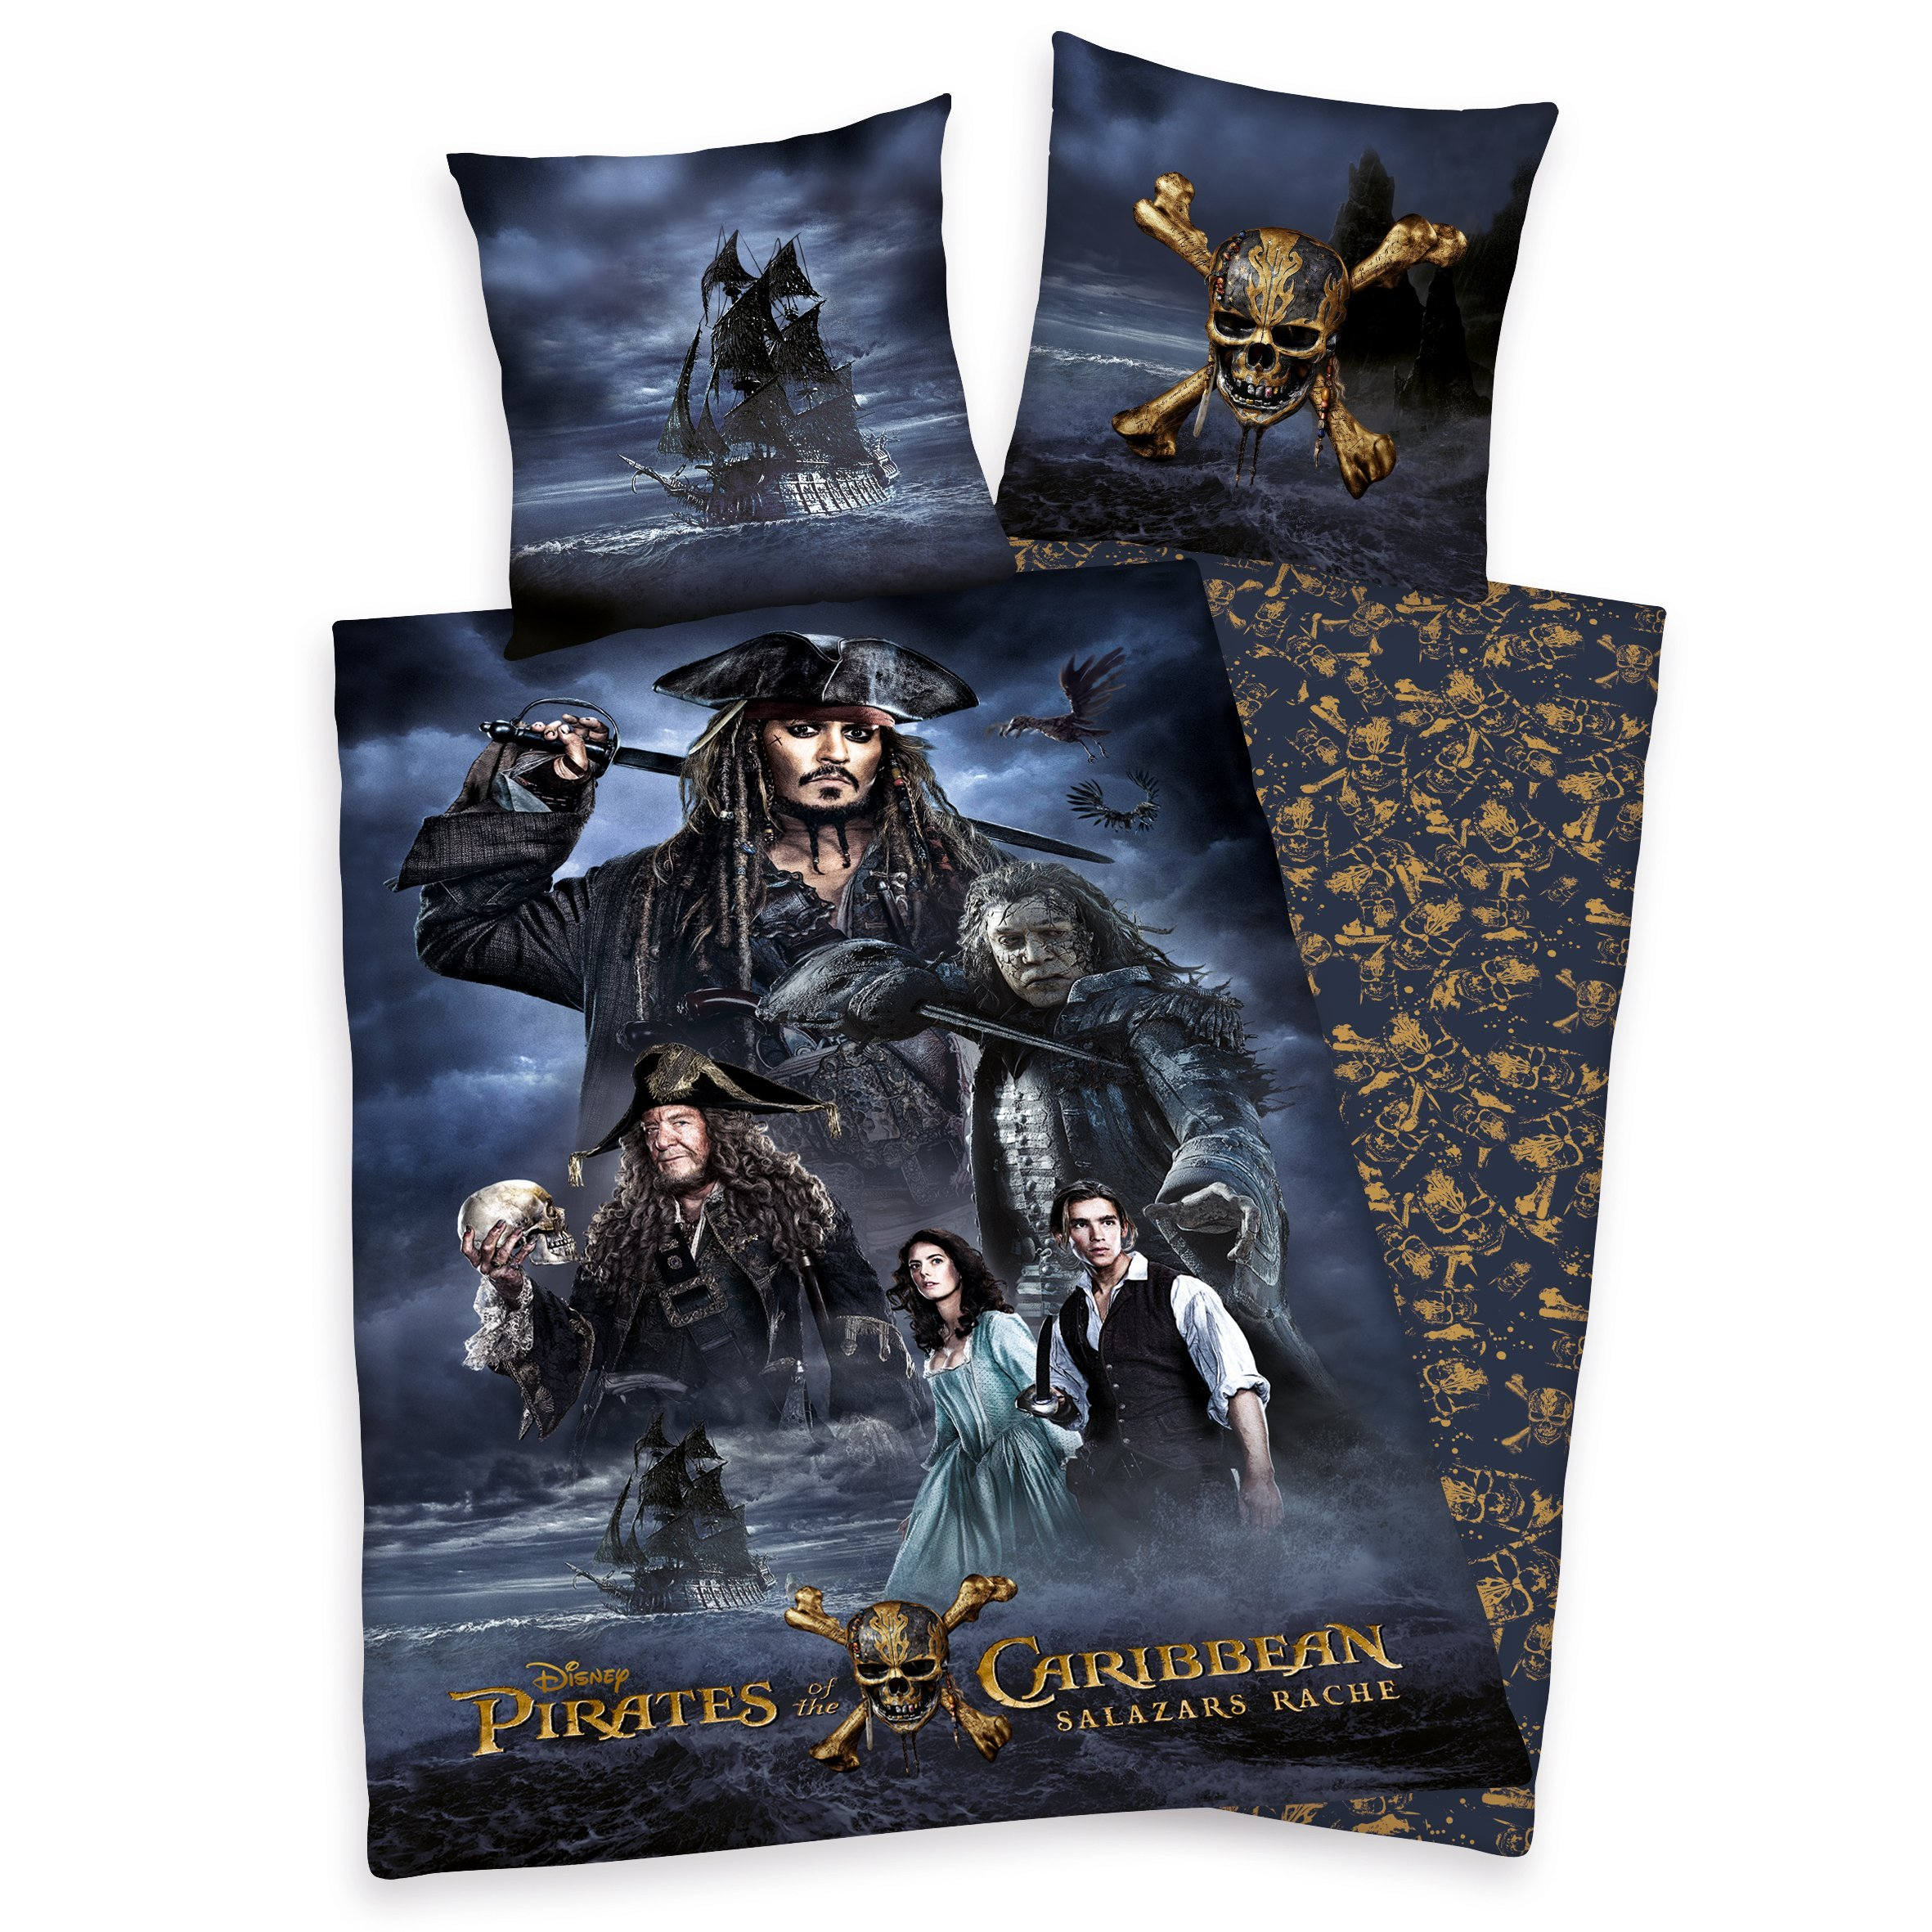 Pirates of the Caribbean dekbedovertrek 140x200 Salazars Revenge